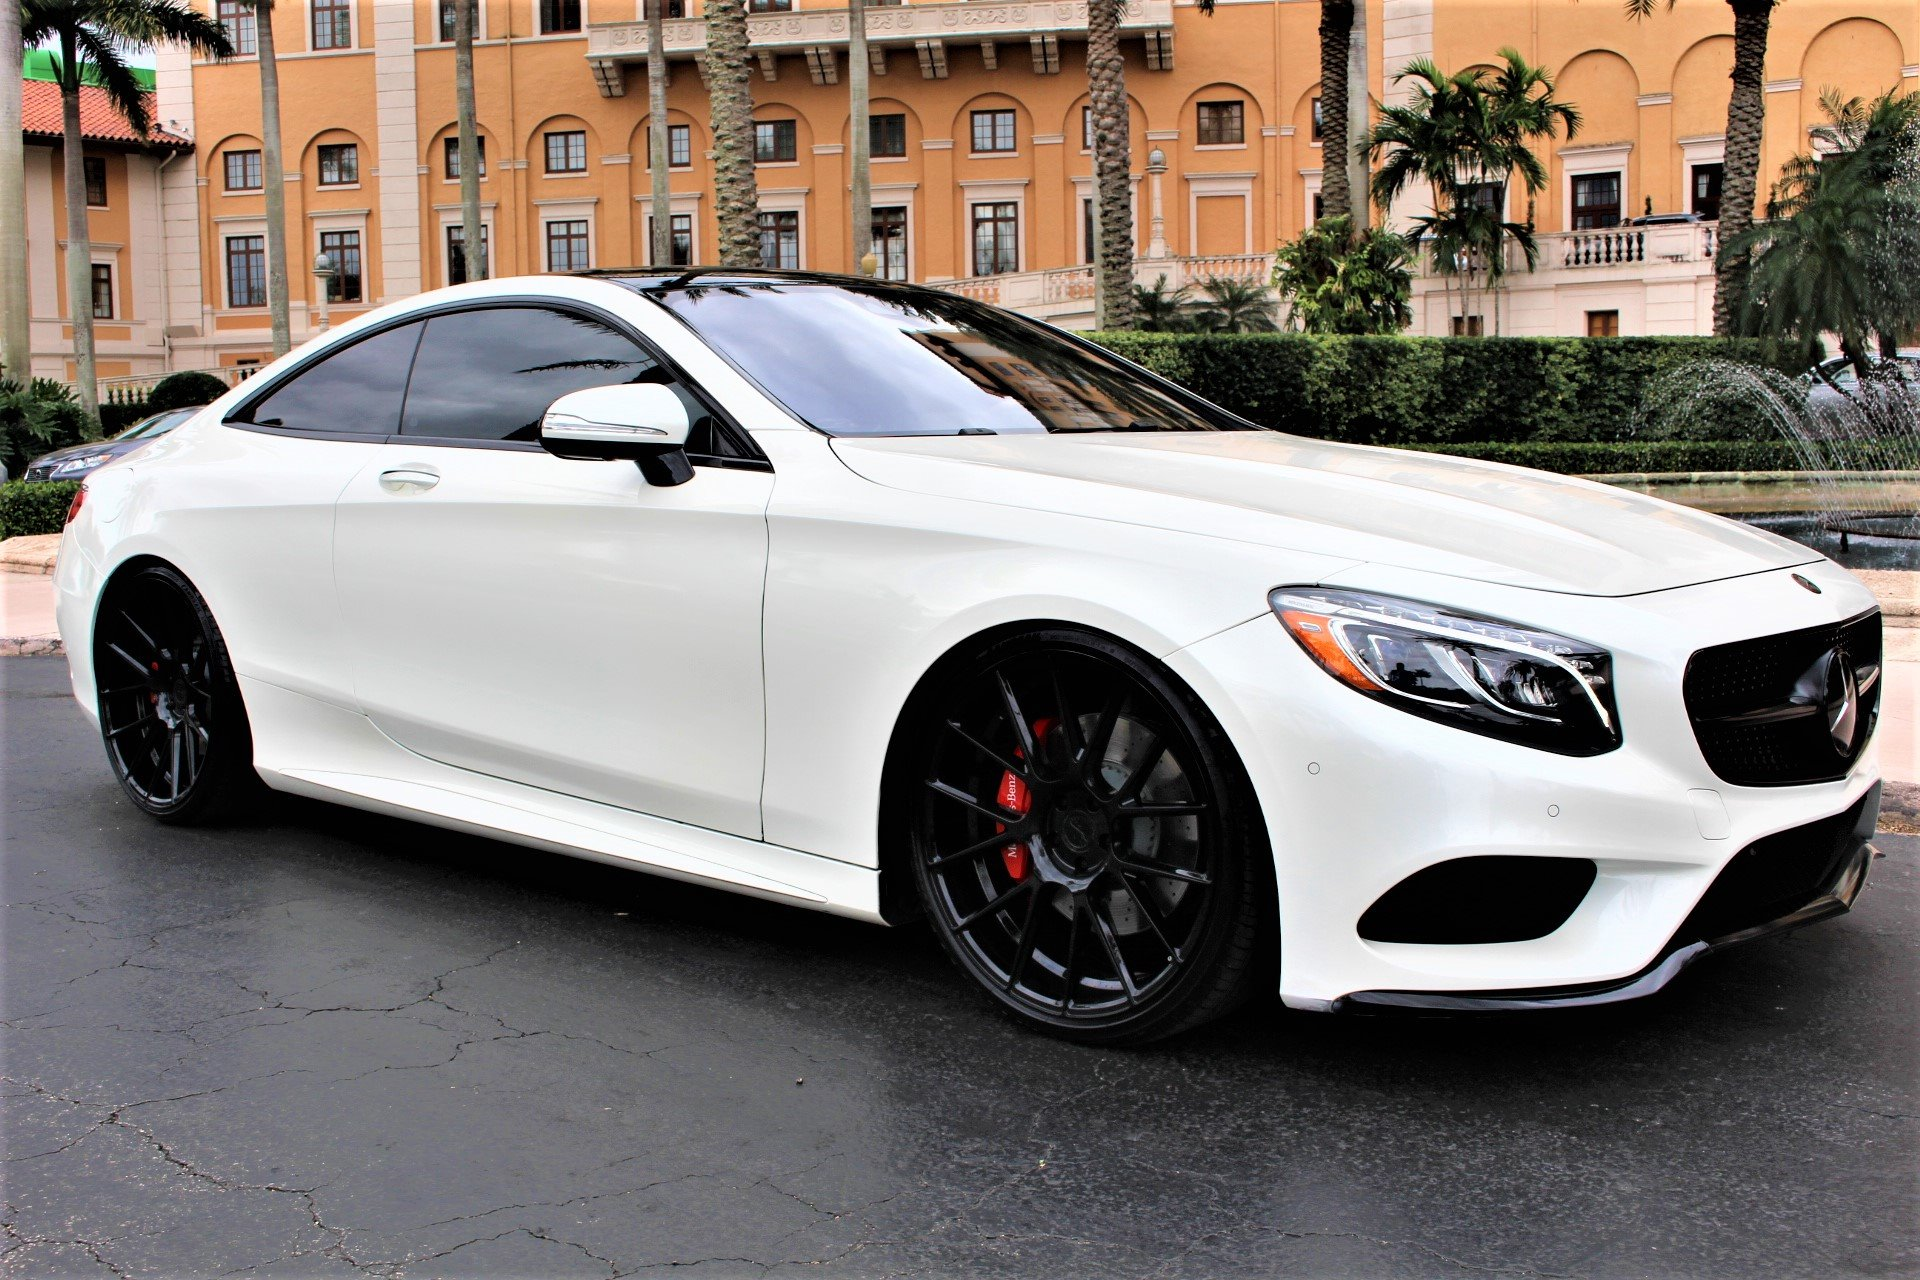 Used 2015 Mercedes-Benz S-Class S 550 4MATIC for sale Sold at The Gables Sports Cars in Miami FL 33146 4